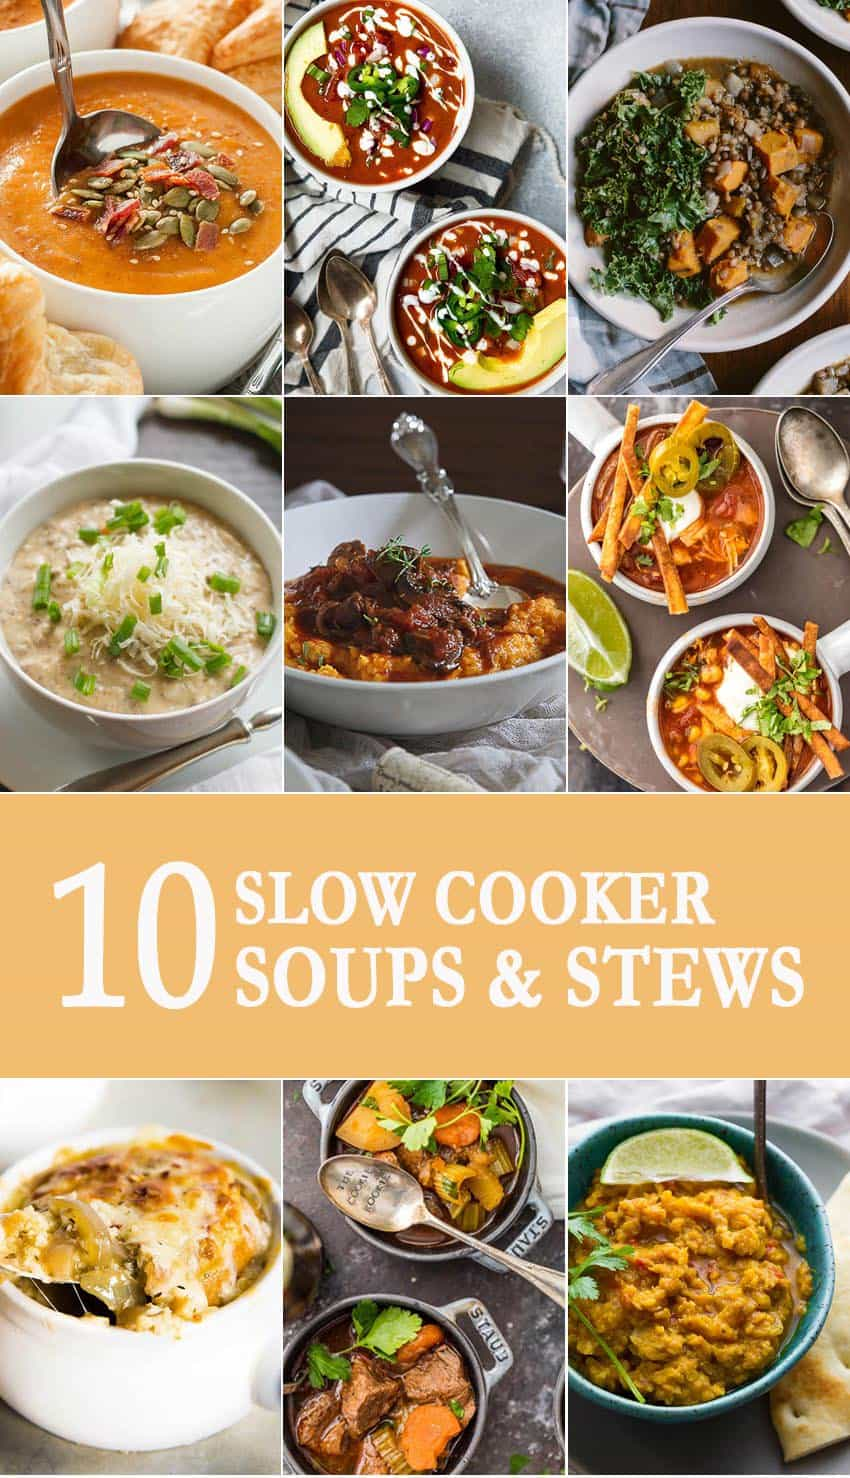 10 Slow Cooker Soups and Stews